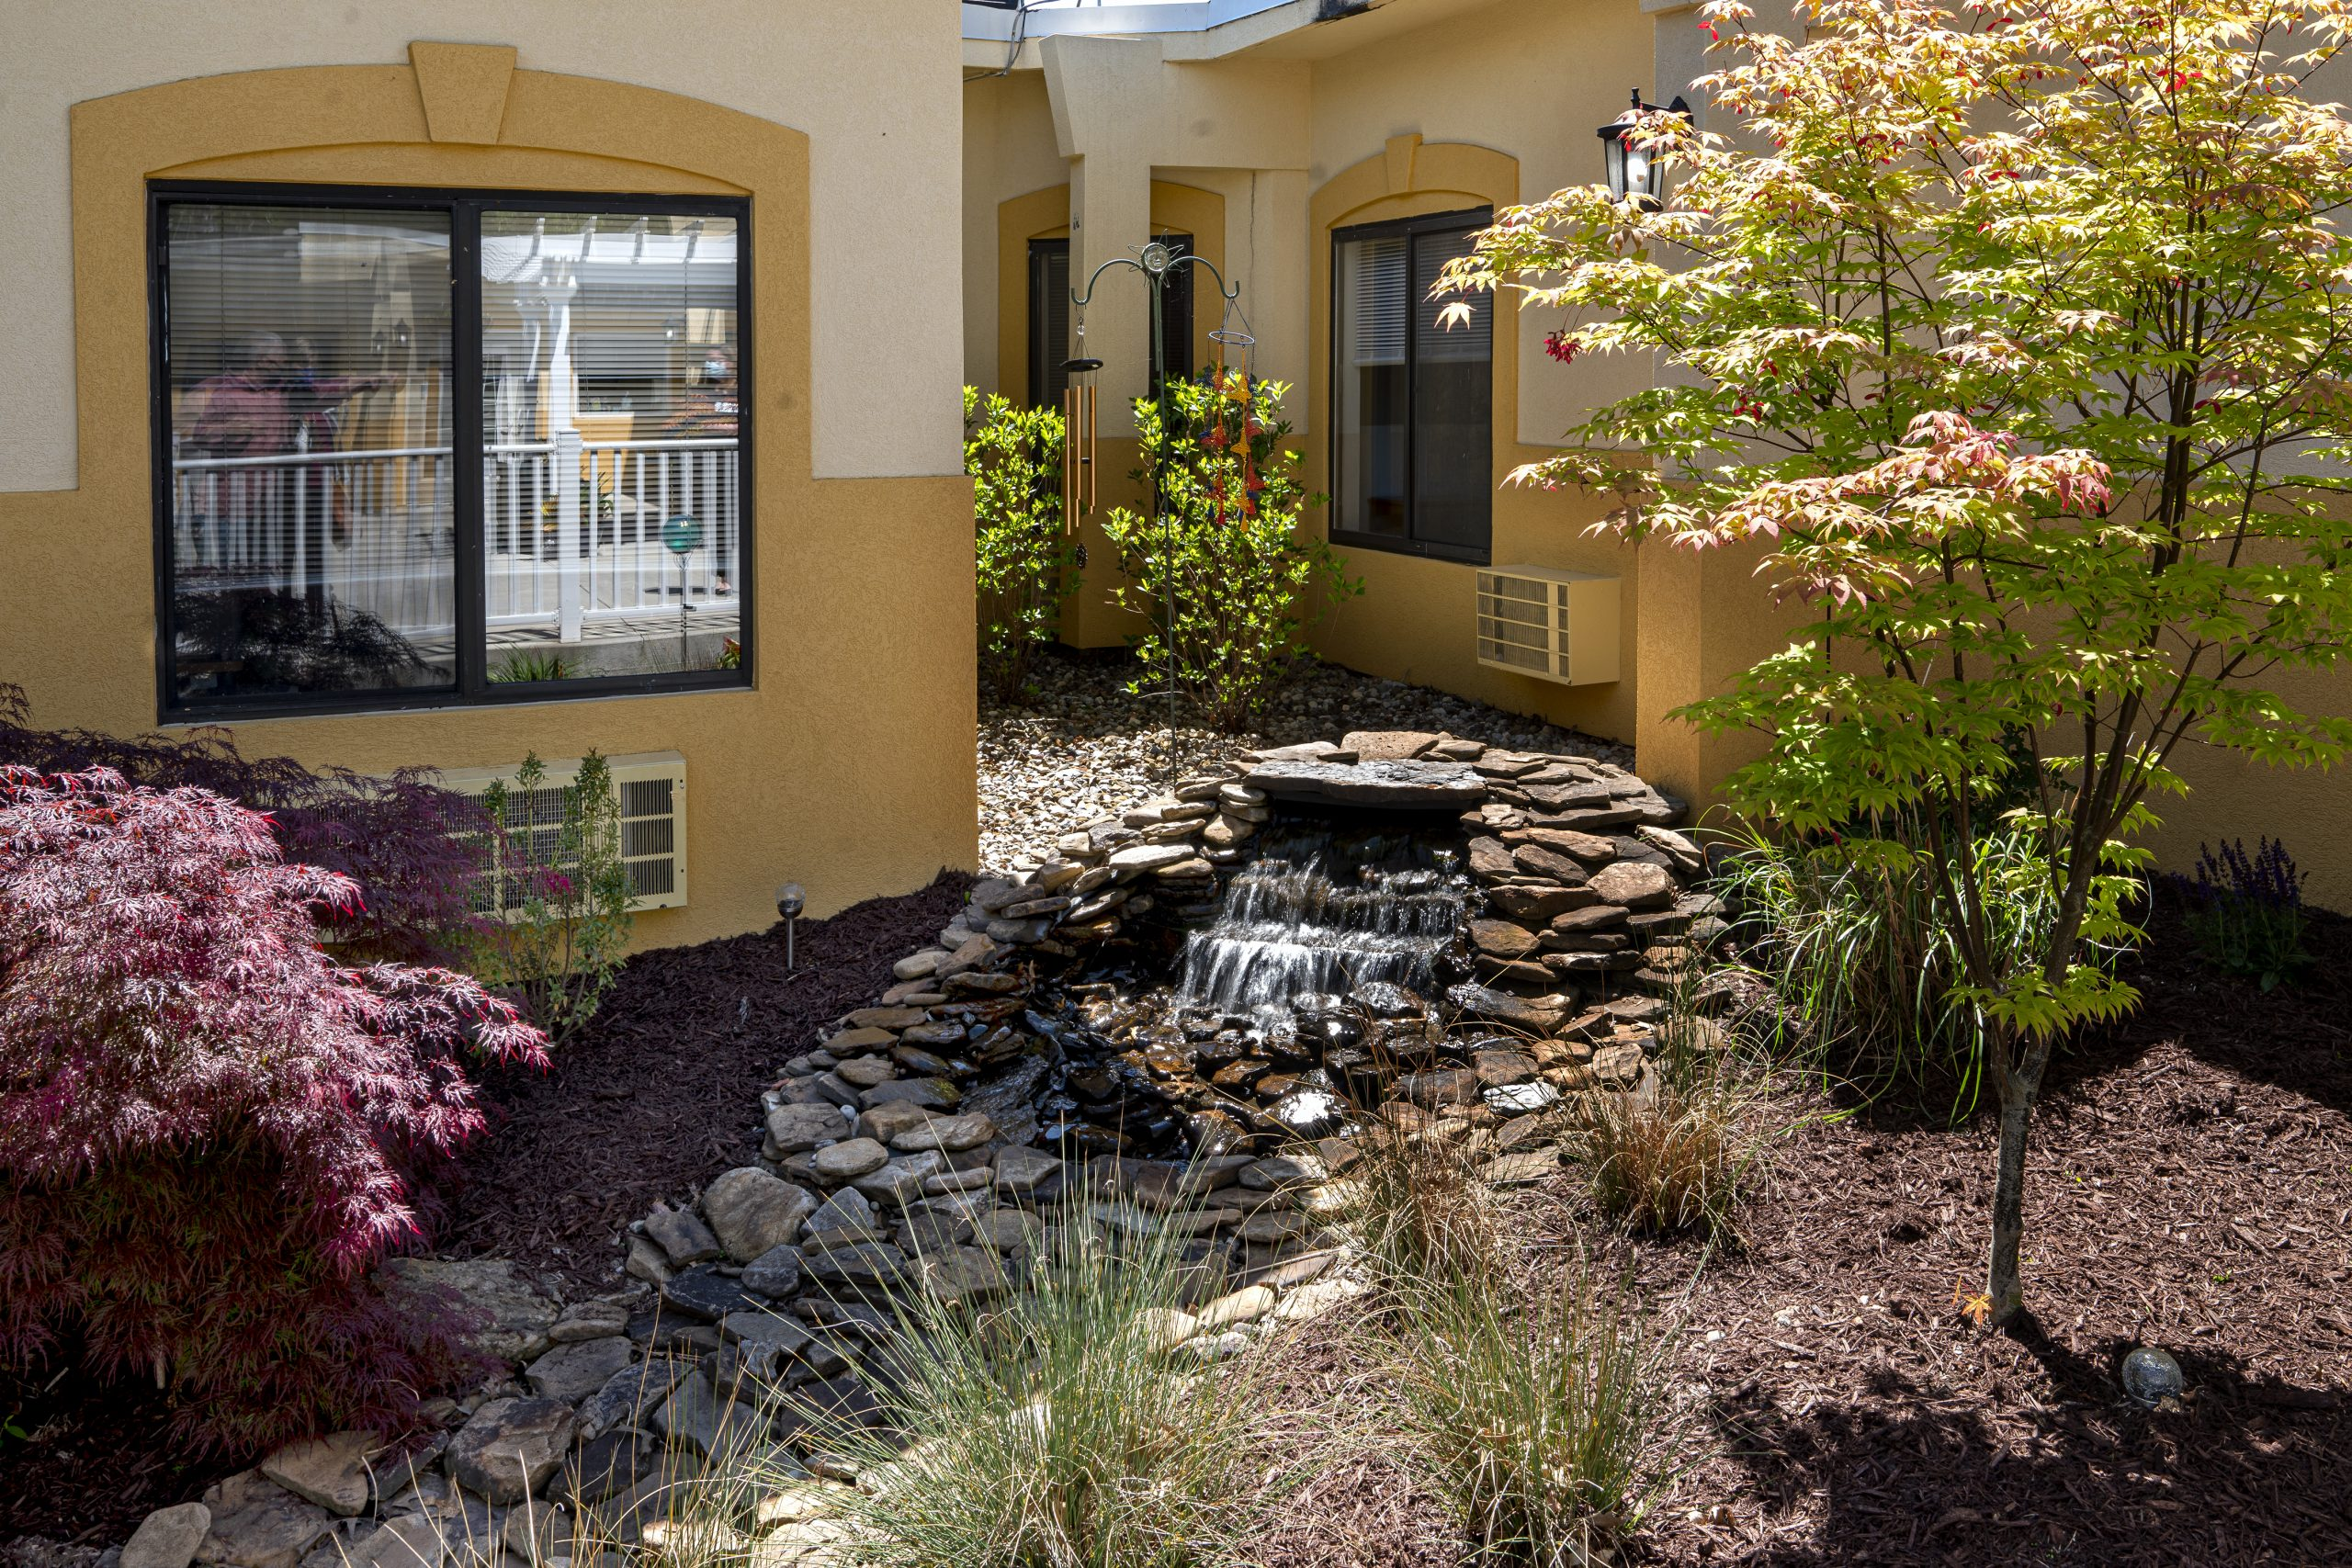 Courtyard area at Stonerise Parkersburg with small waterfall and colorful trees